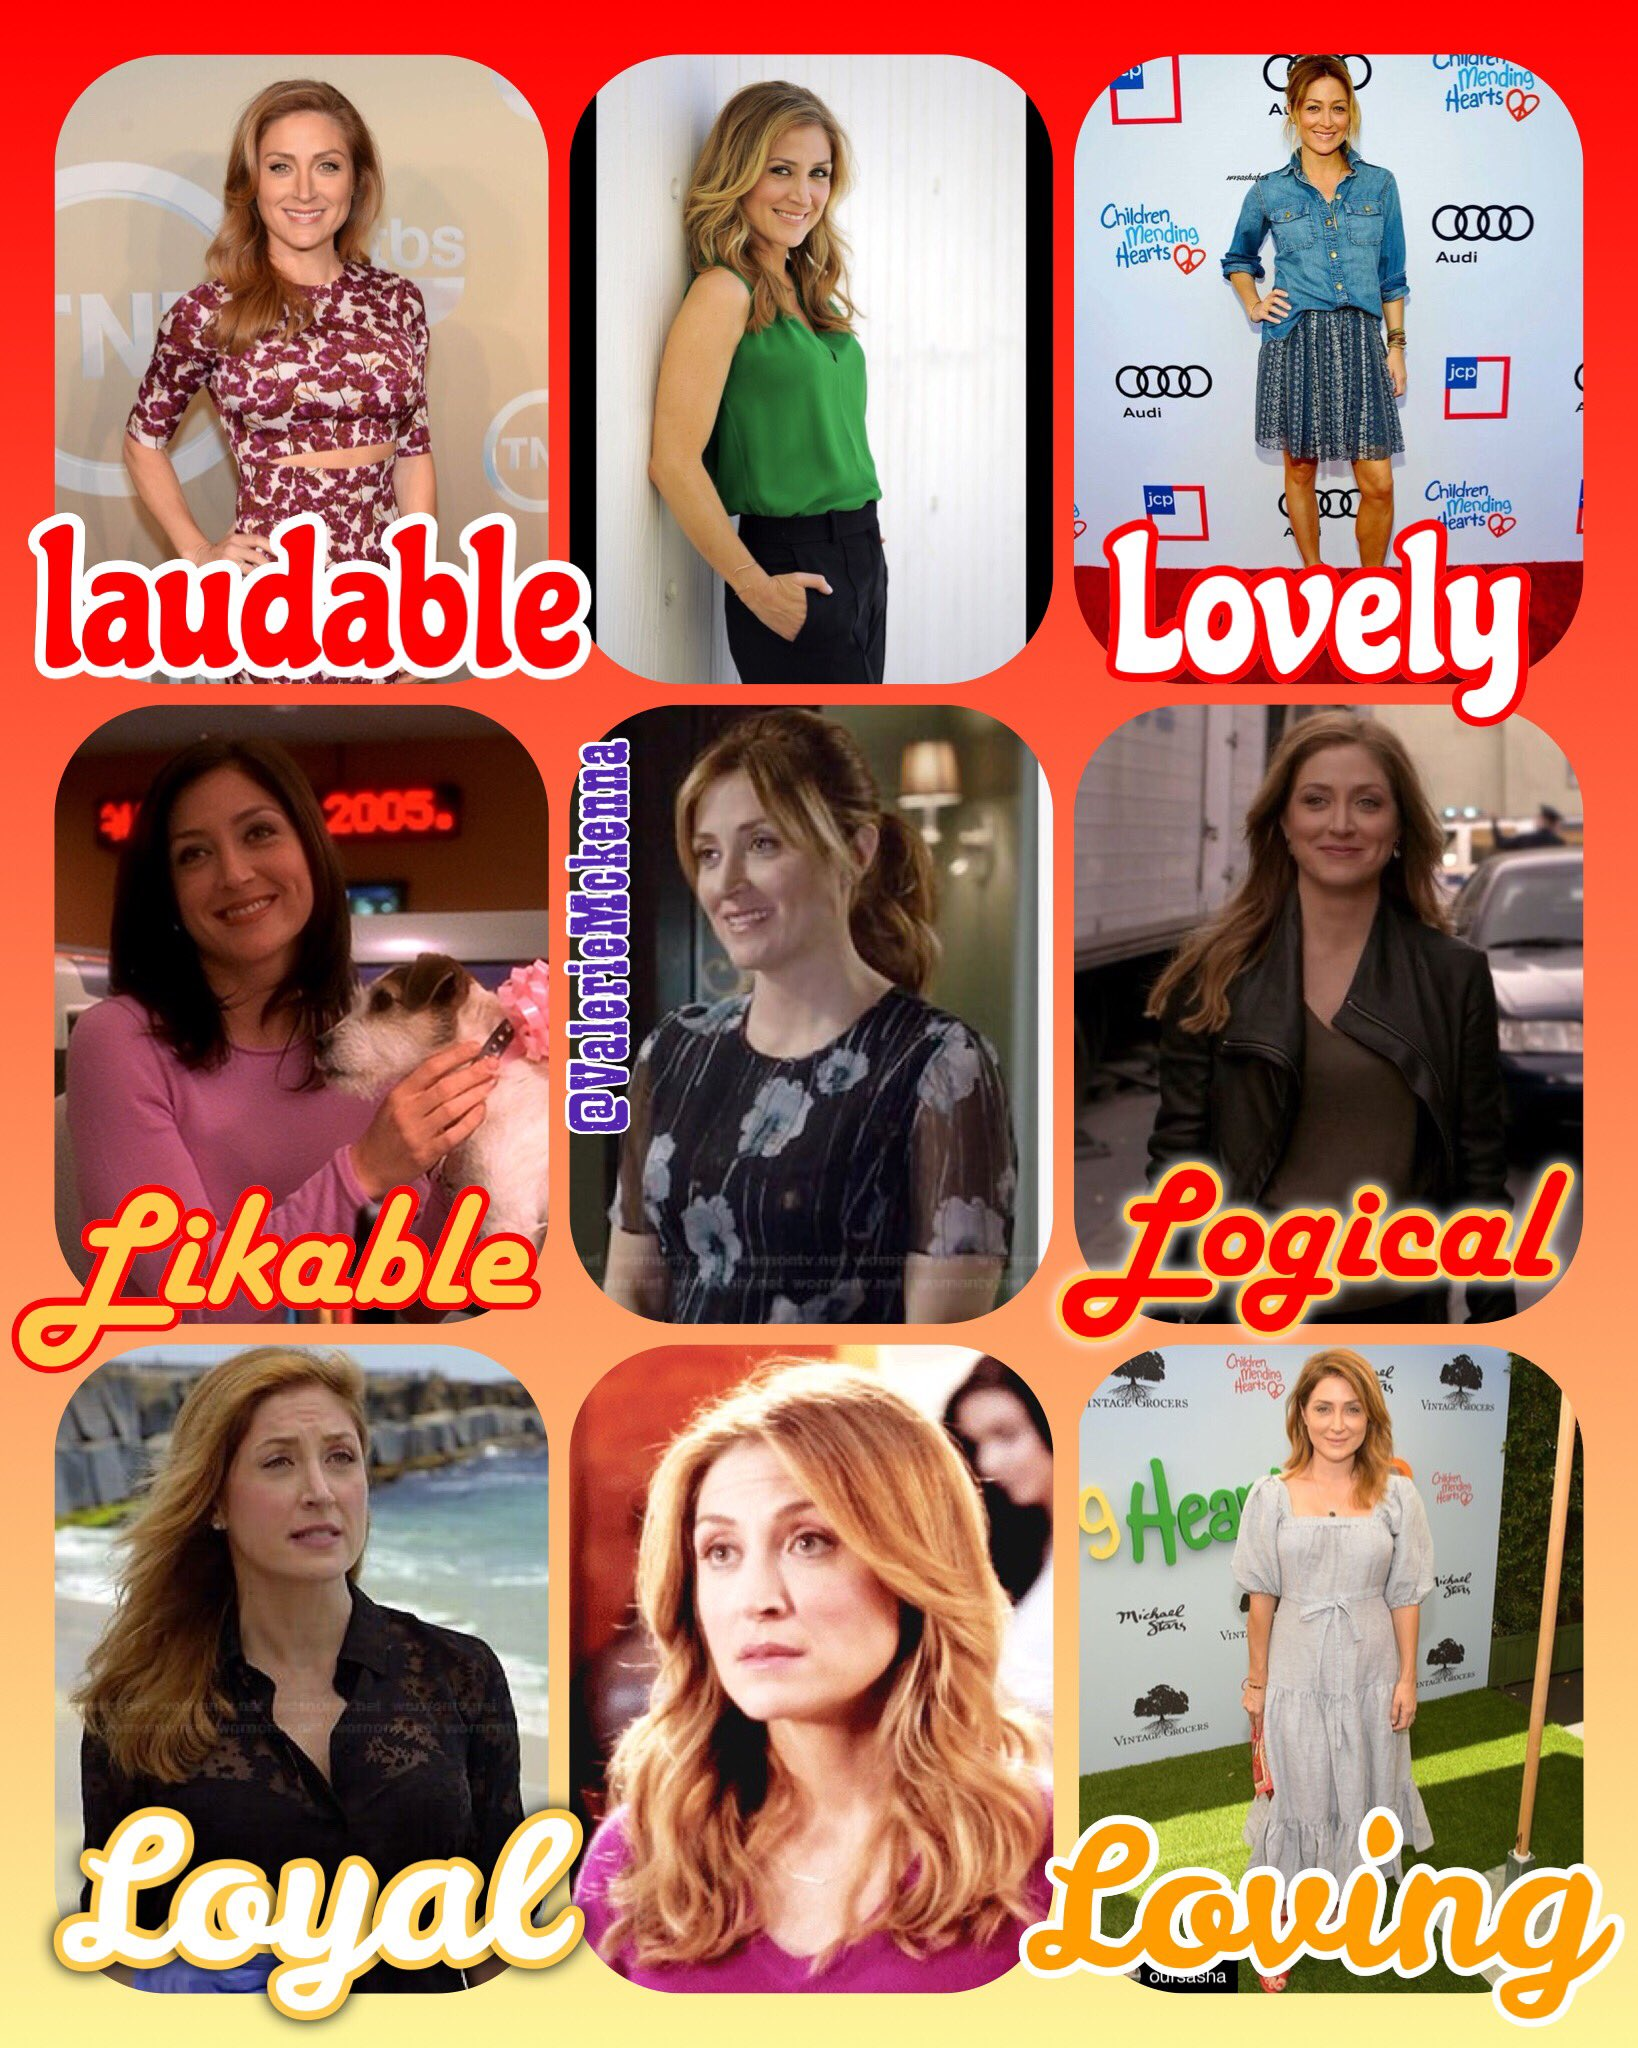 "The letter ""L"" to describe @sashaalexander these adjectives fits her well. @TeamSasha @Taina47 @YvonneMarti2 https://t.co/Tt5mLveERW"